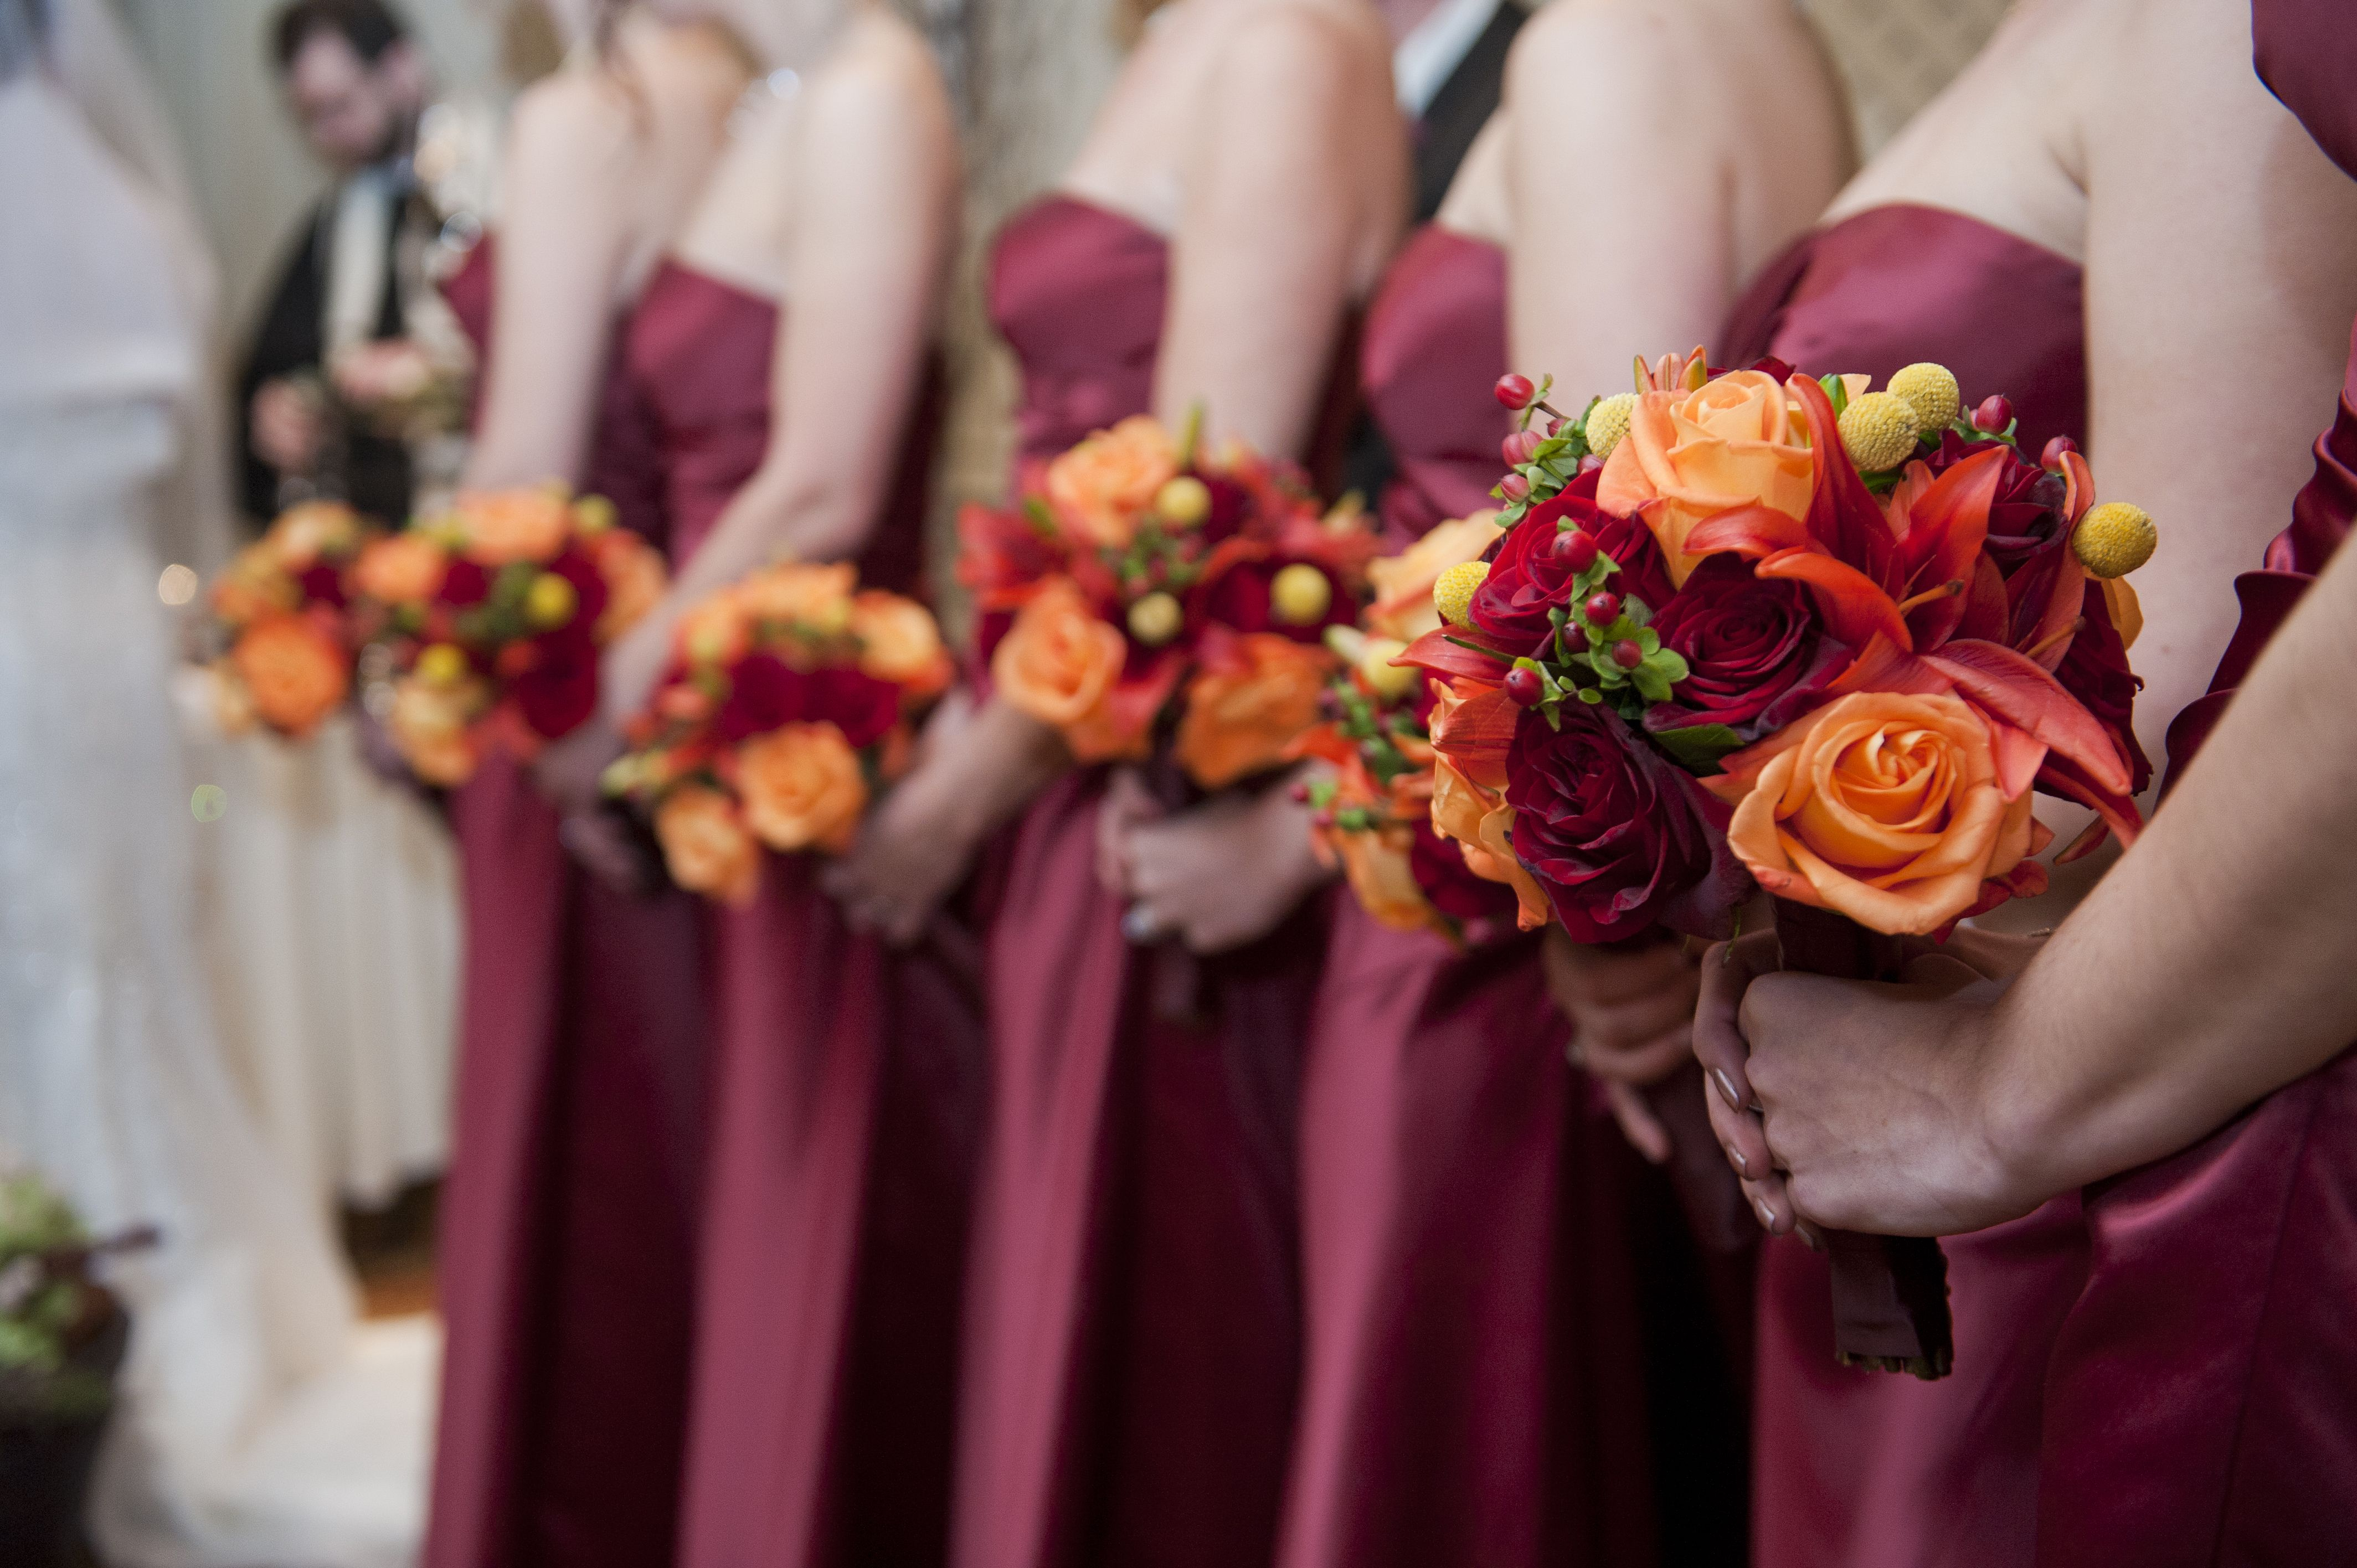 Fall colors my october wedding pinterest - Flowers for wedding in october a colorful autumn ...